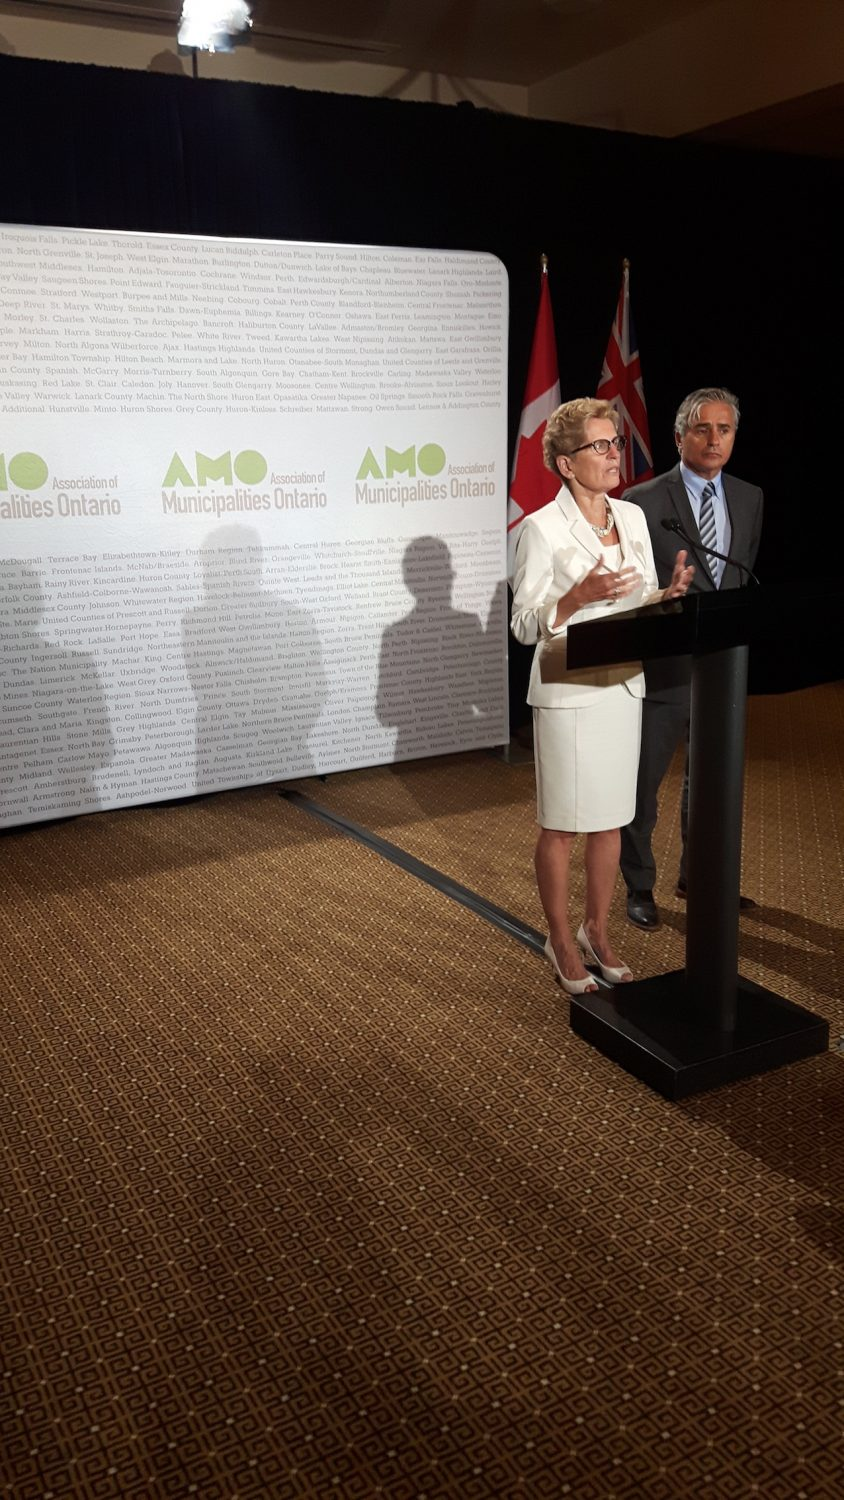 AMO 2016: Premier pushes municipalities to go public with need for new taxes